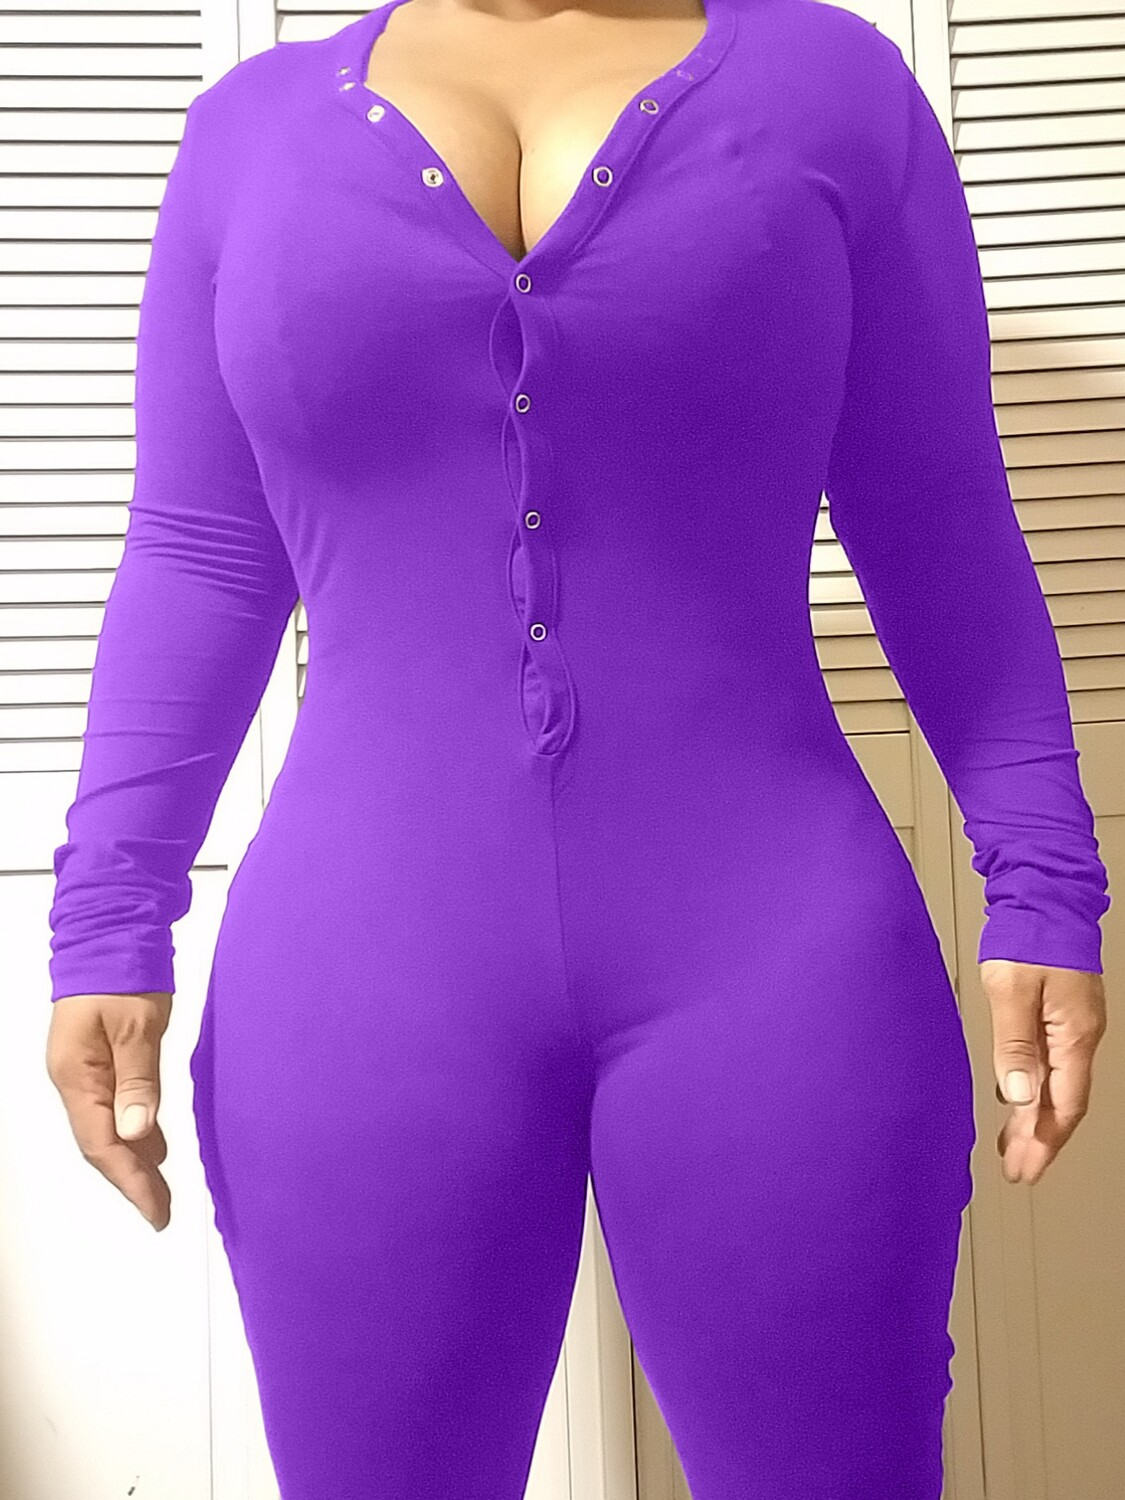 Women's Long Sleeve Shorts Playsuit, Casual, Party, Onesie Pajama Wear- PURE COLOR Purple